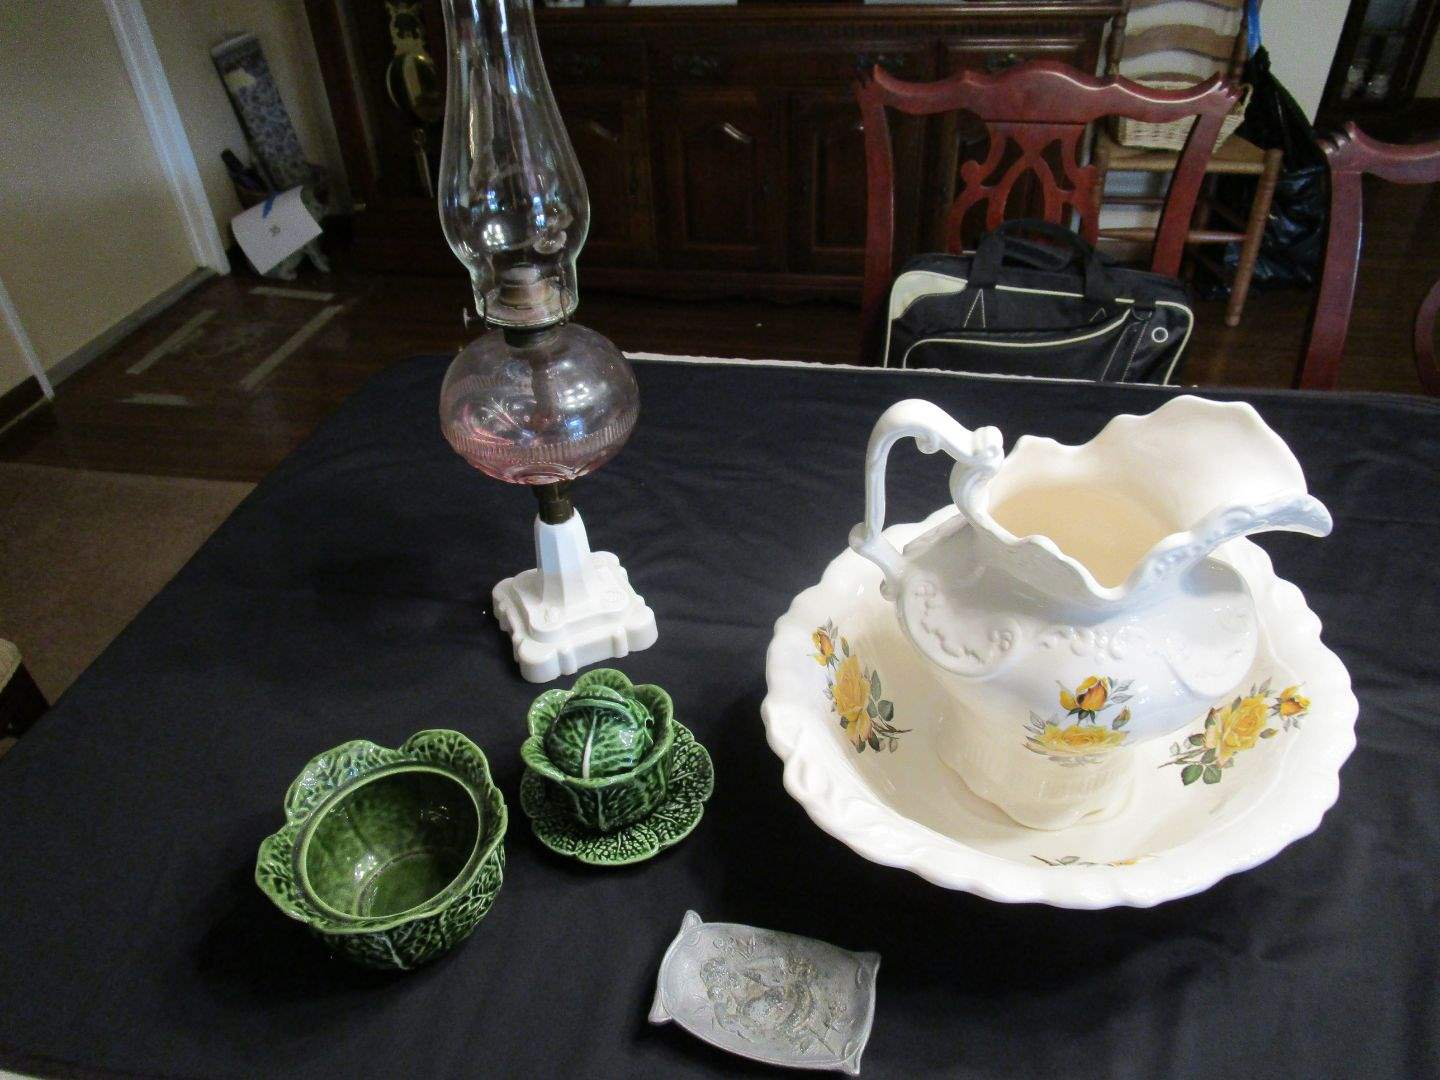 Lot # 49 - Milk Glass & Cranberry Glass Oil Lamp and Decor (main image)